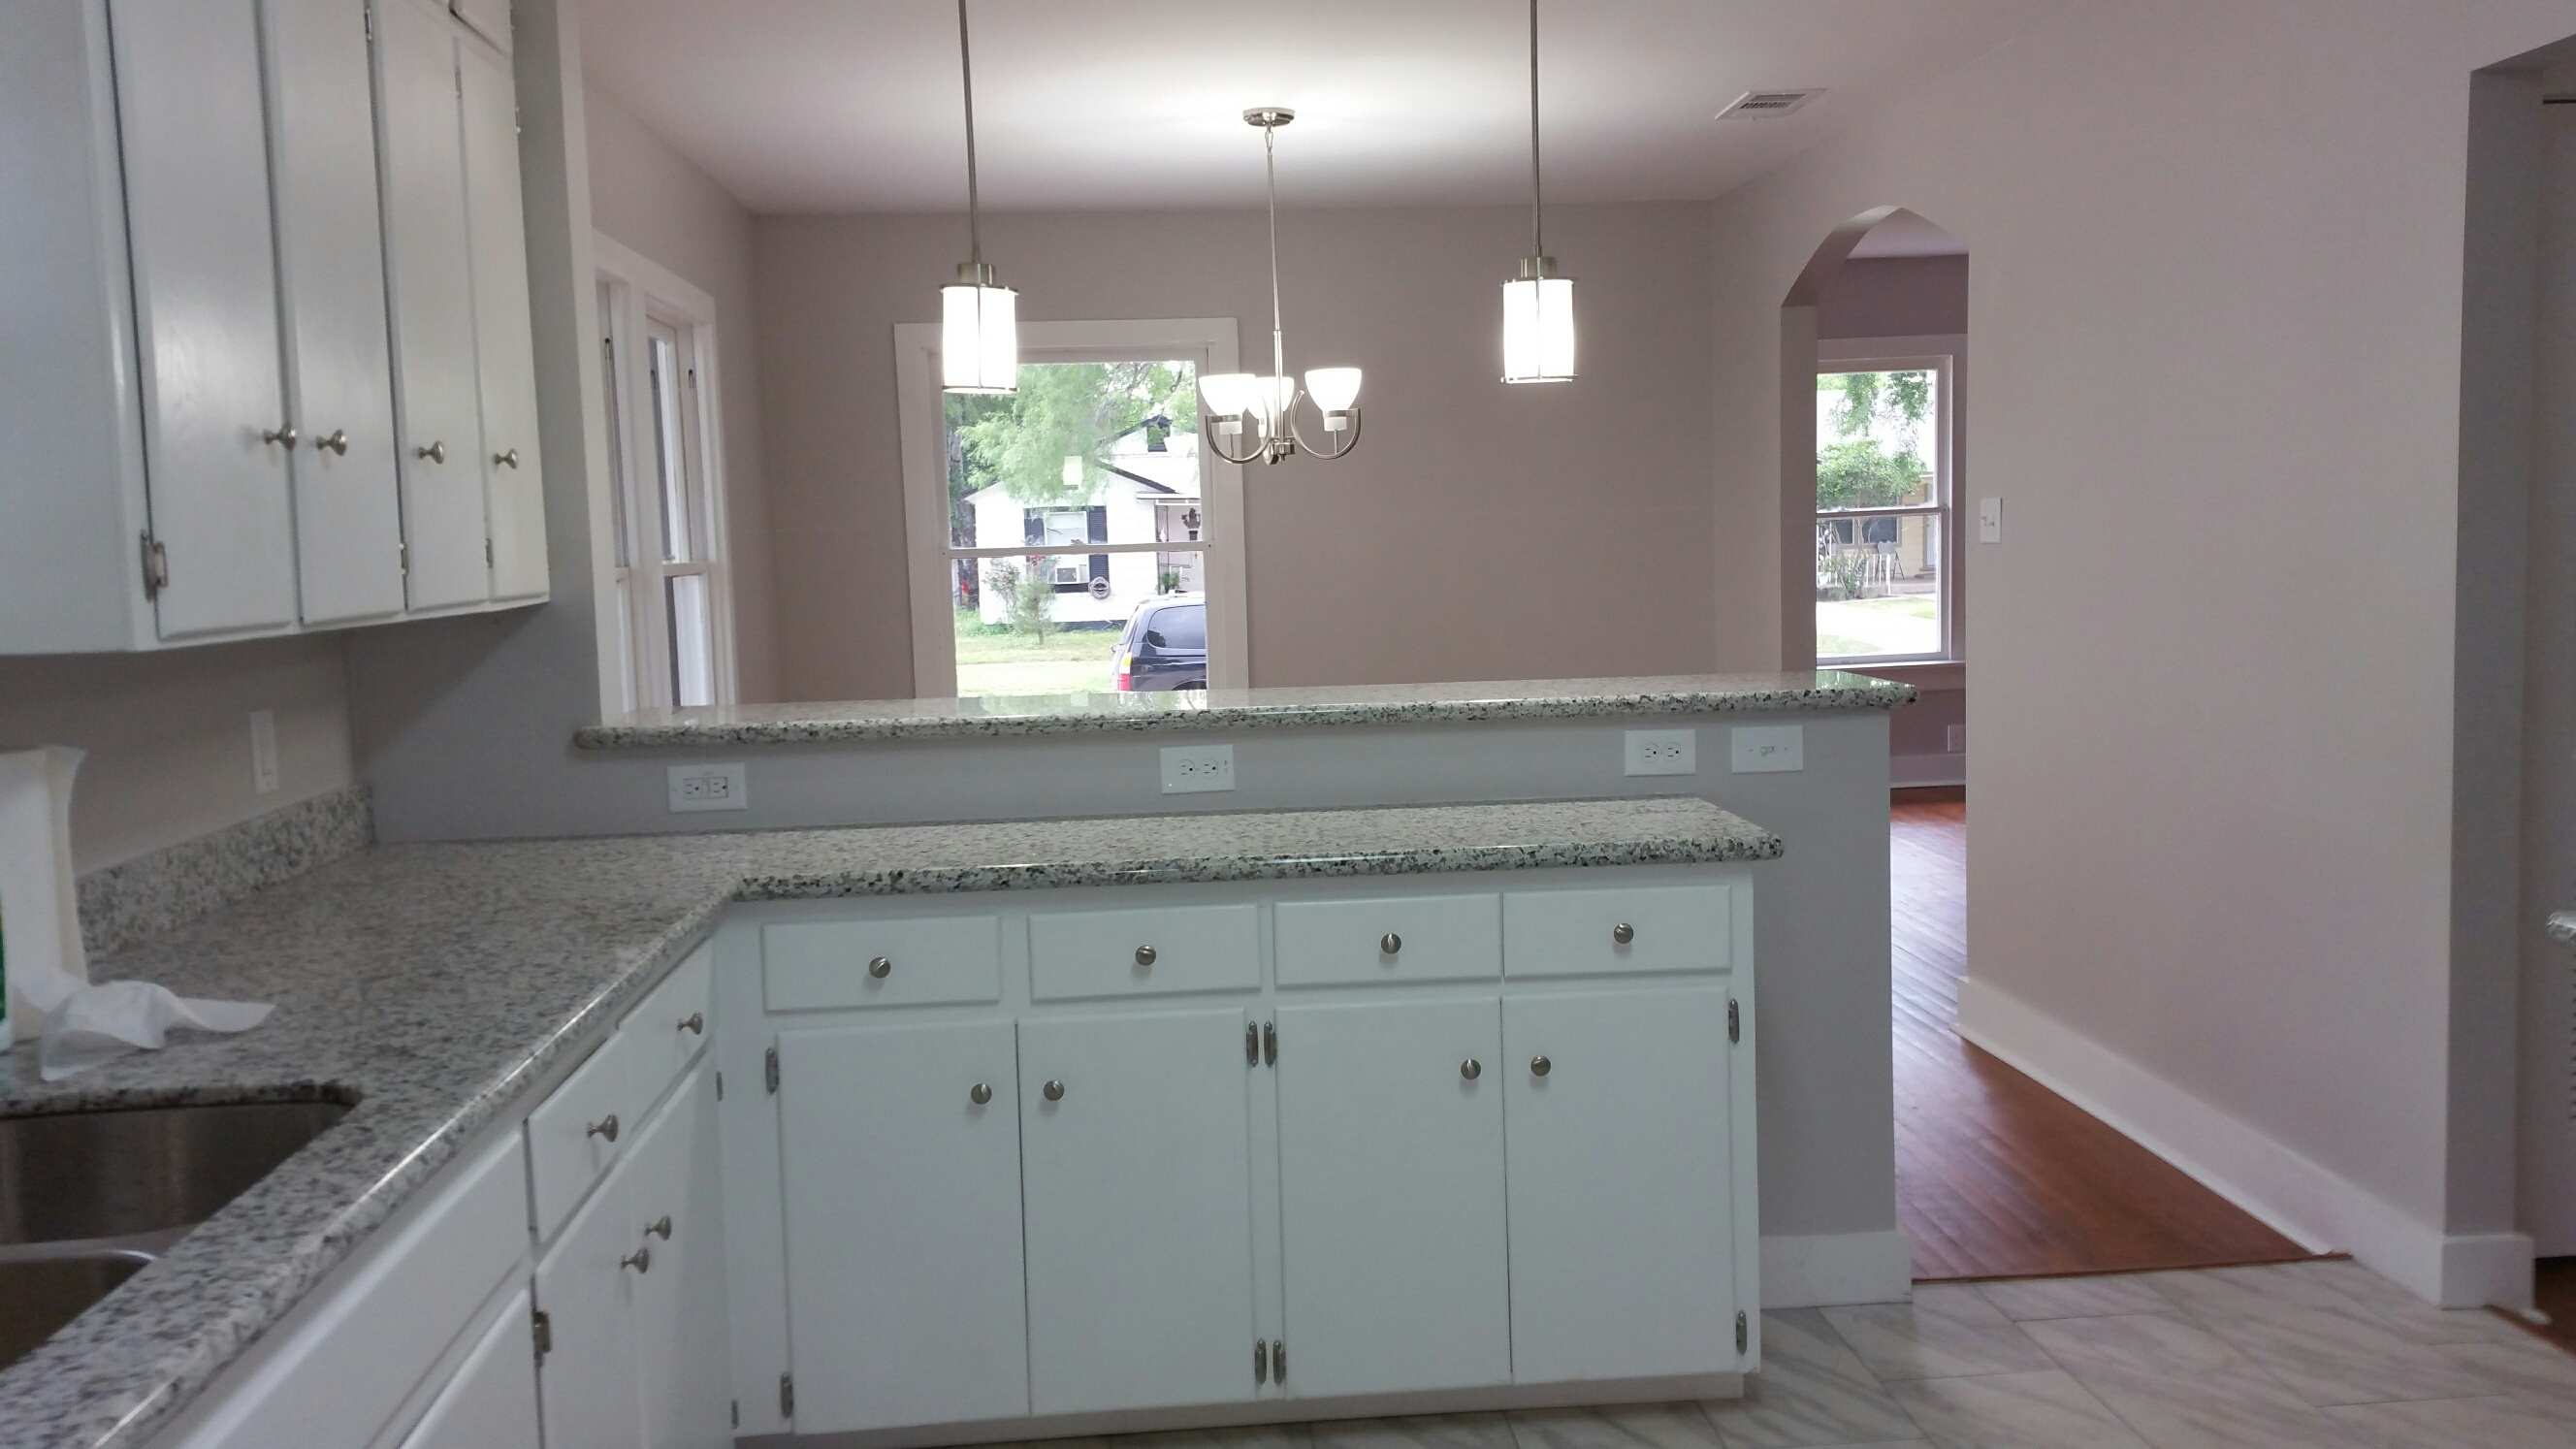 After kitchen San Antonio TX home for sale